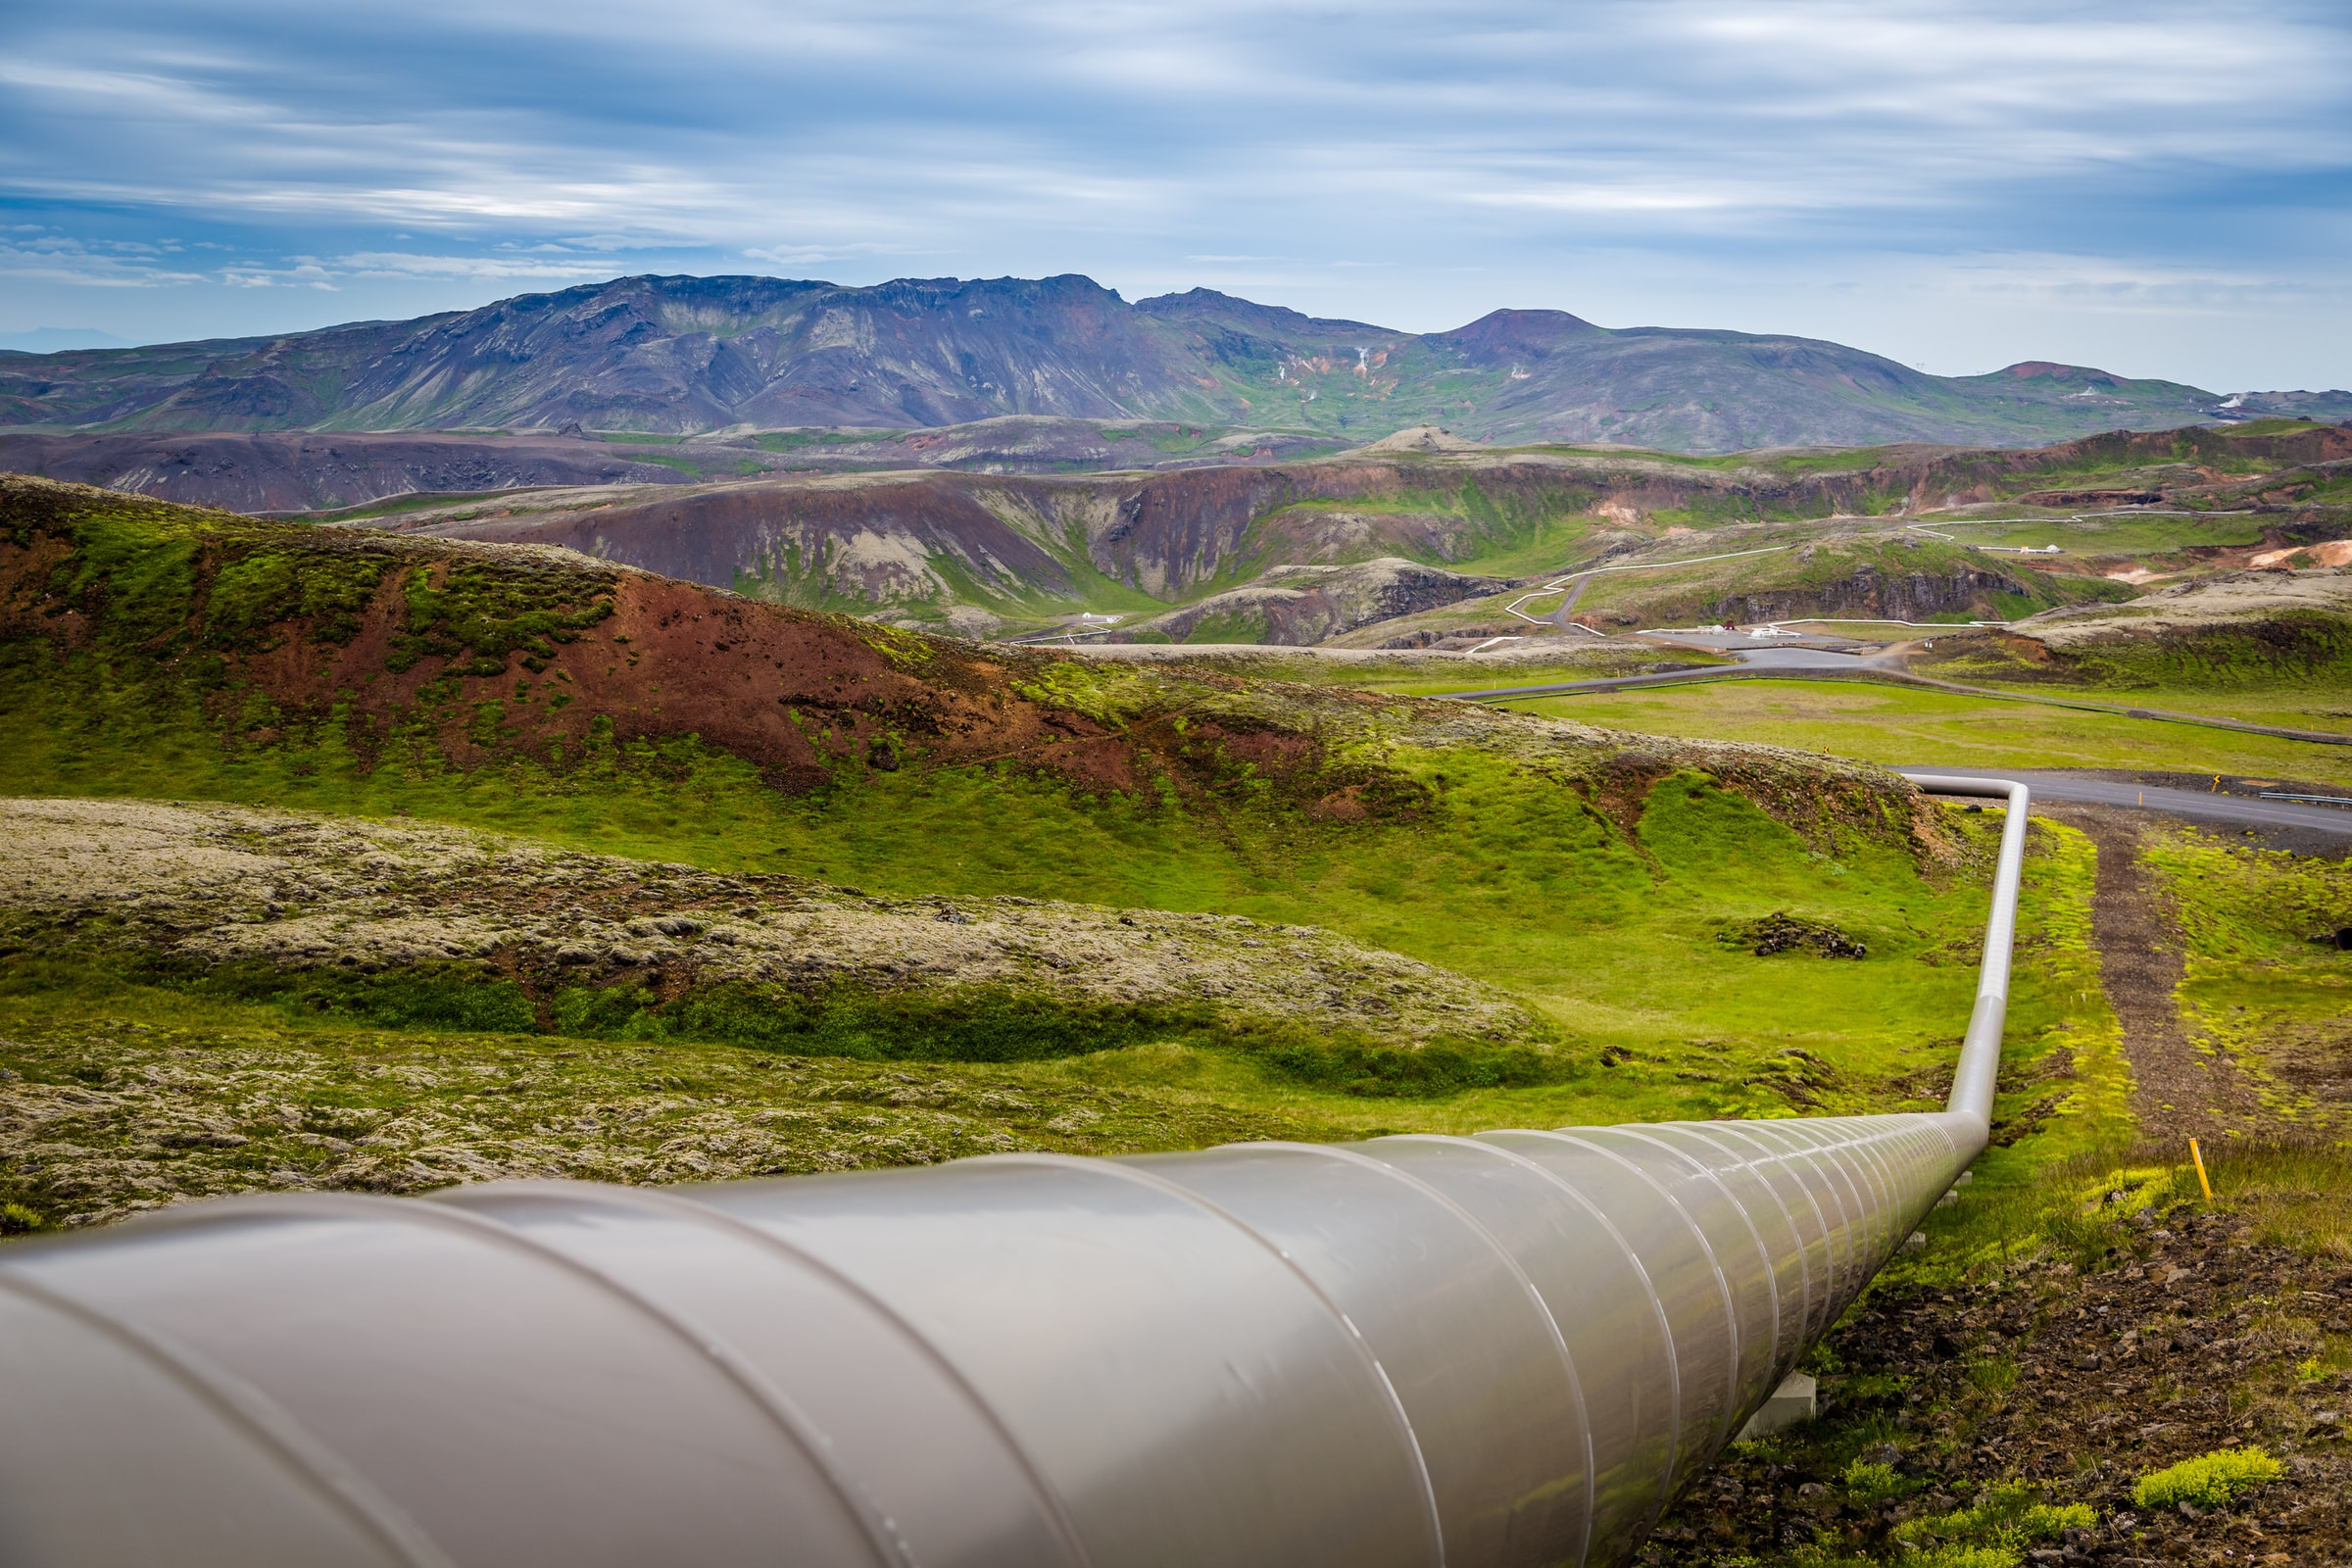 An oil and gas pipeline going through the mountains.